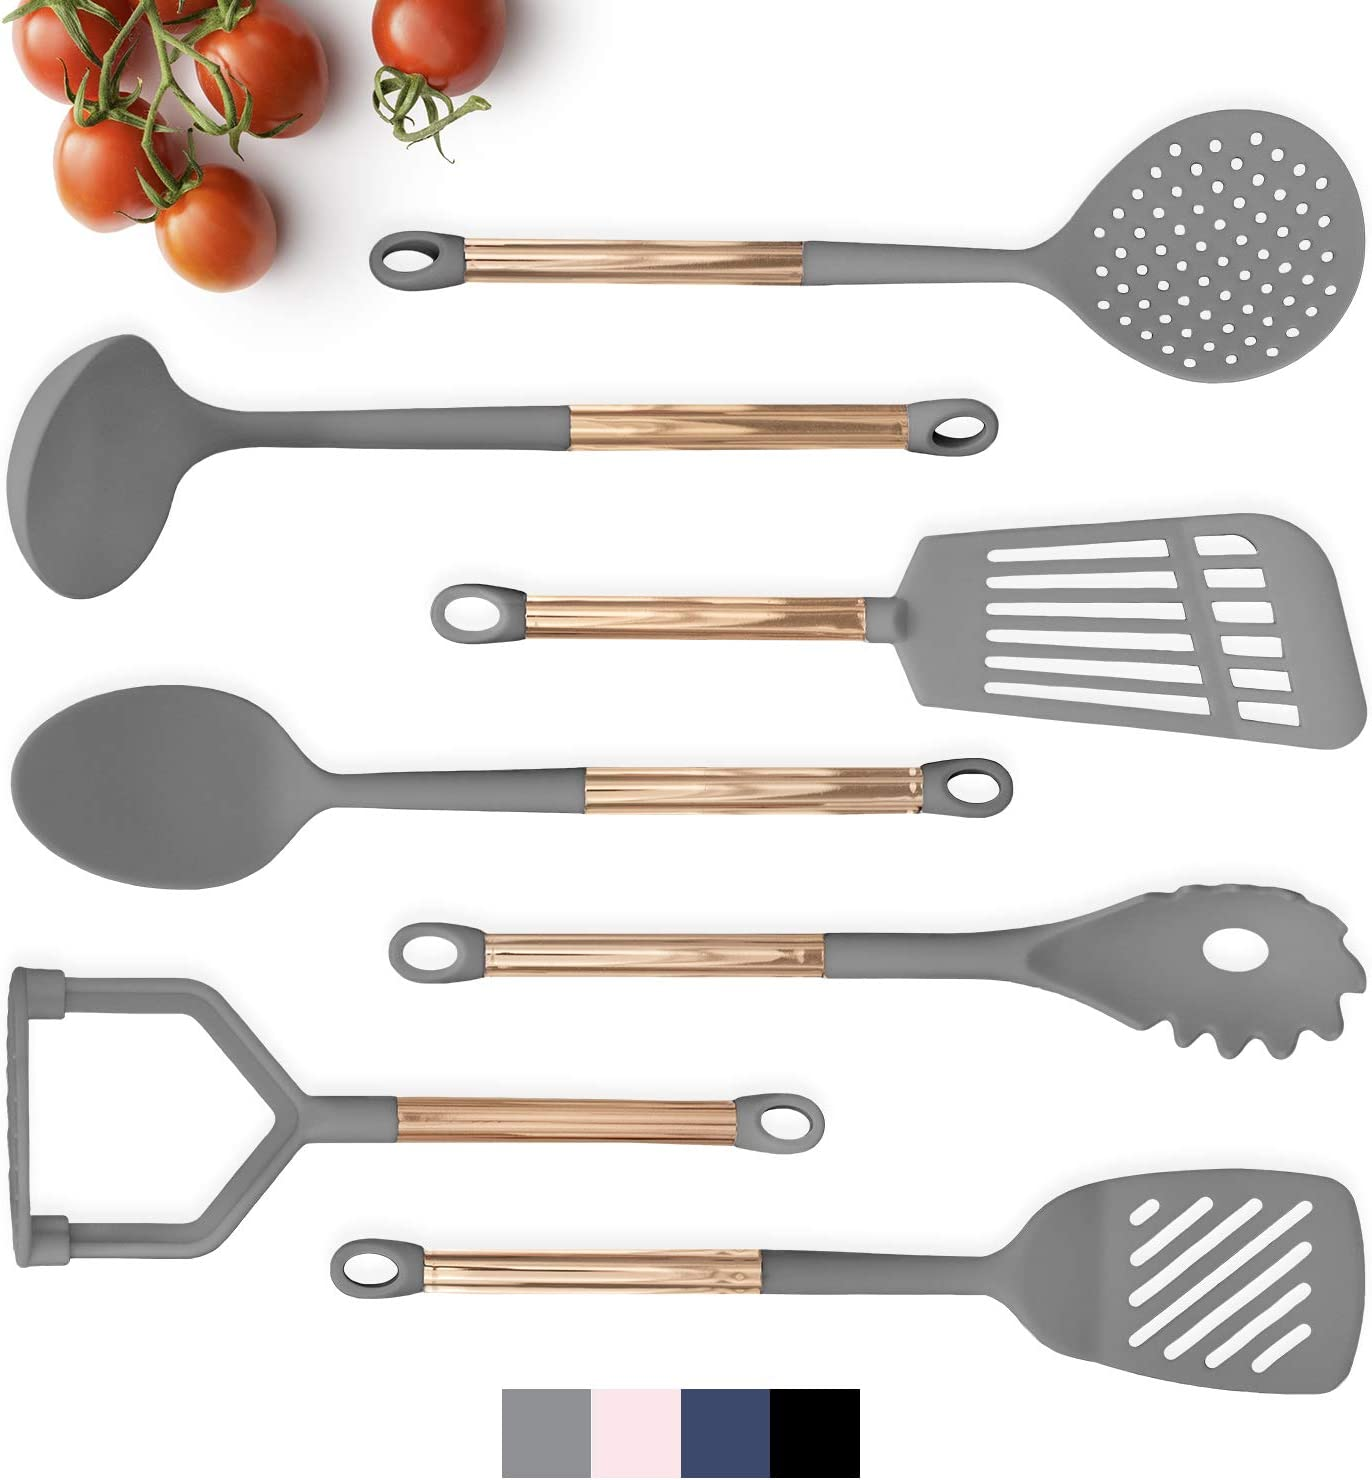 COOK With COLOR 7 Piece Grey Nylon Cooking Utensil Set with Copper Handles - Grey